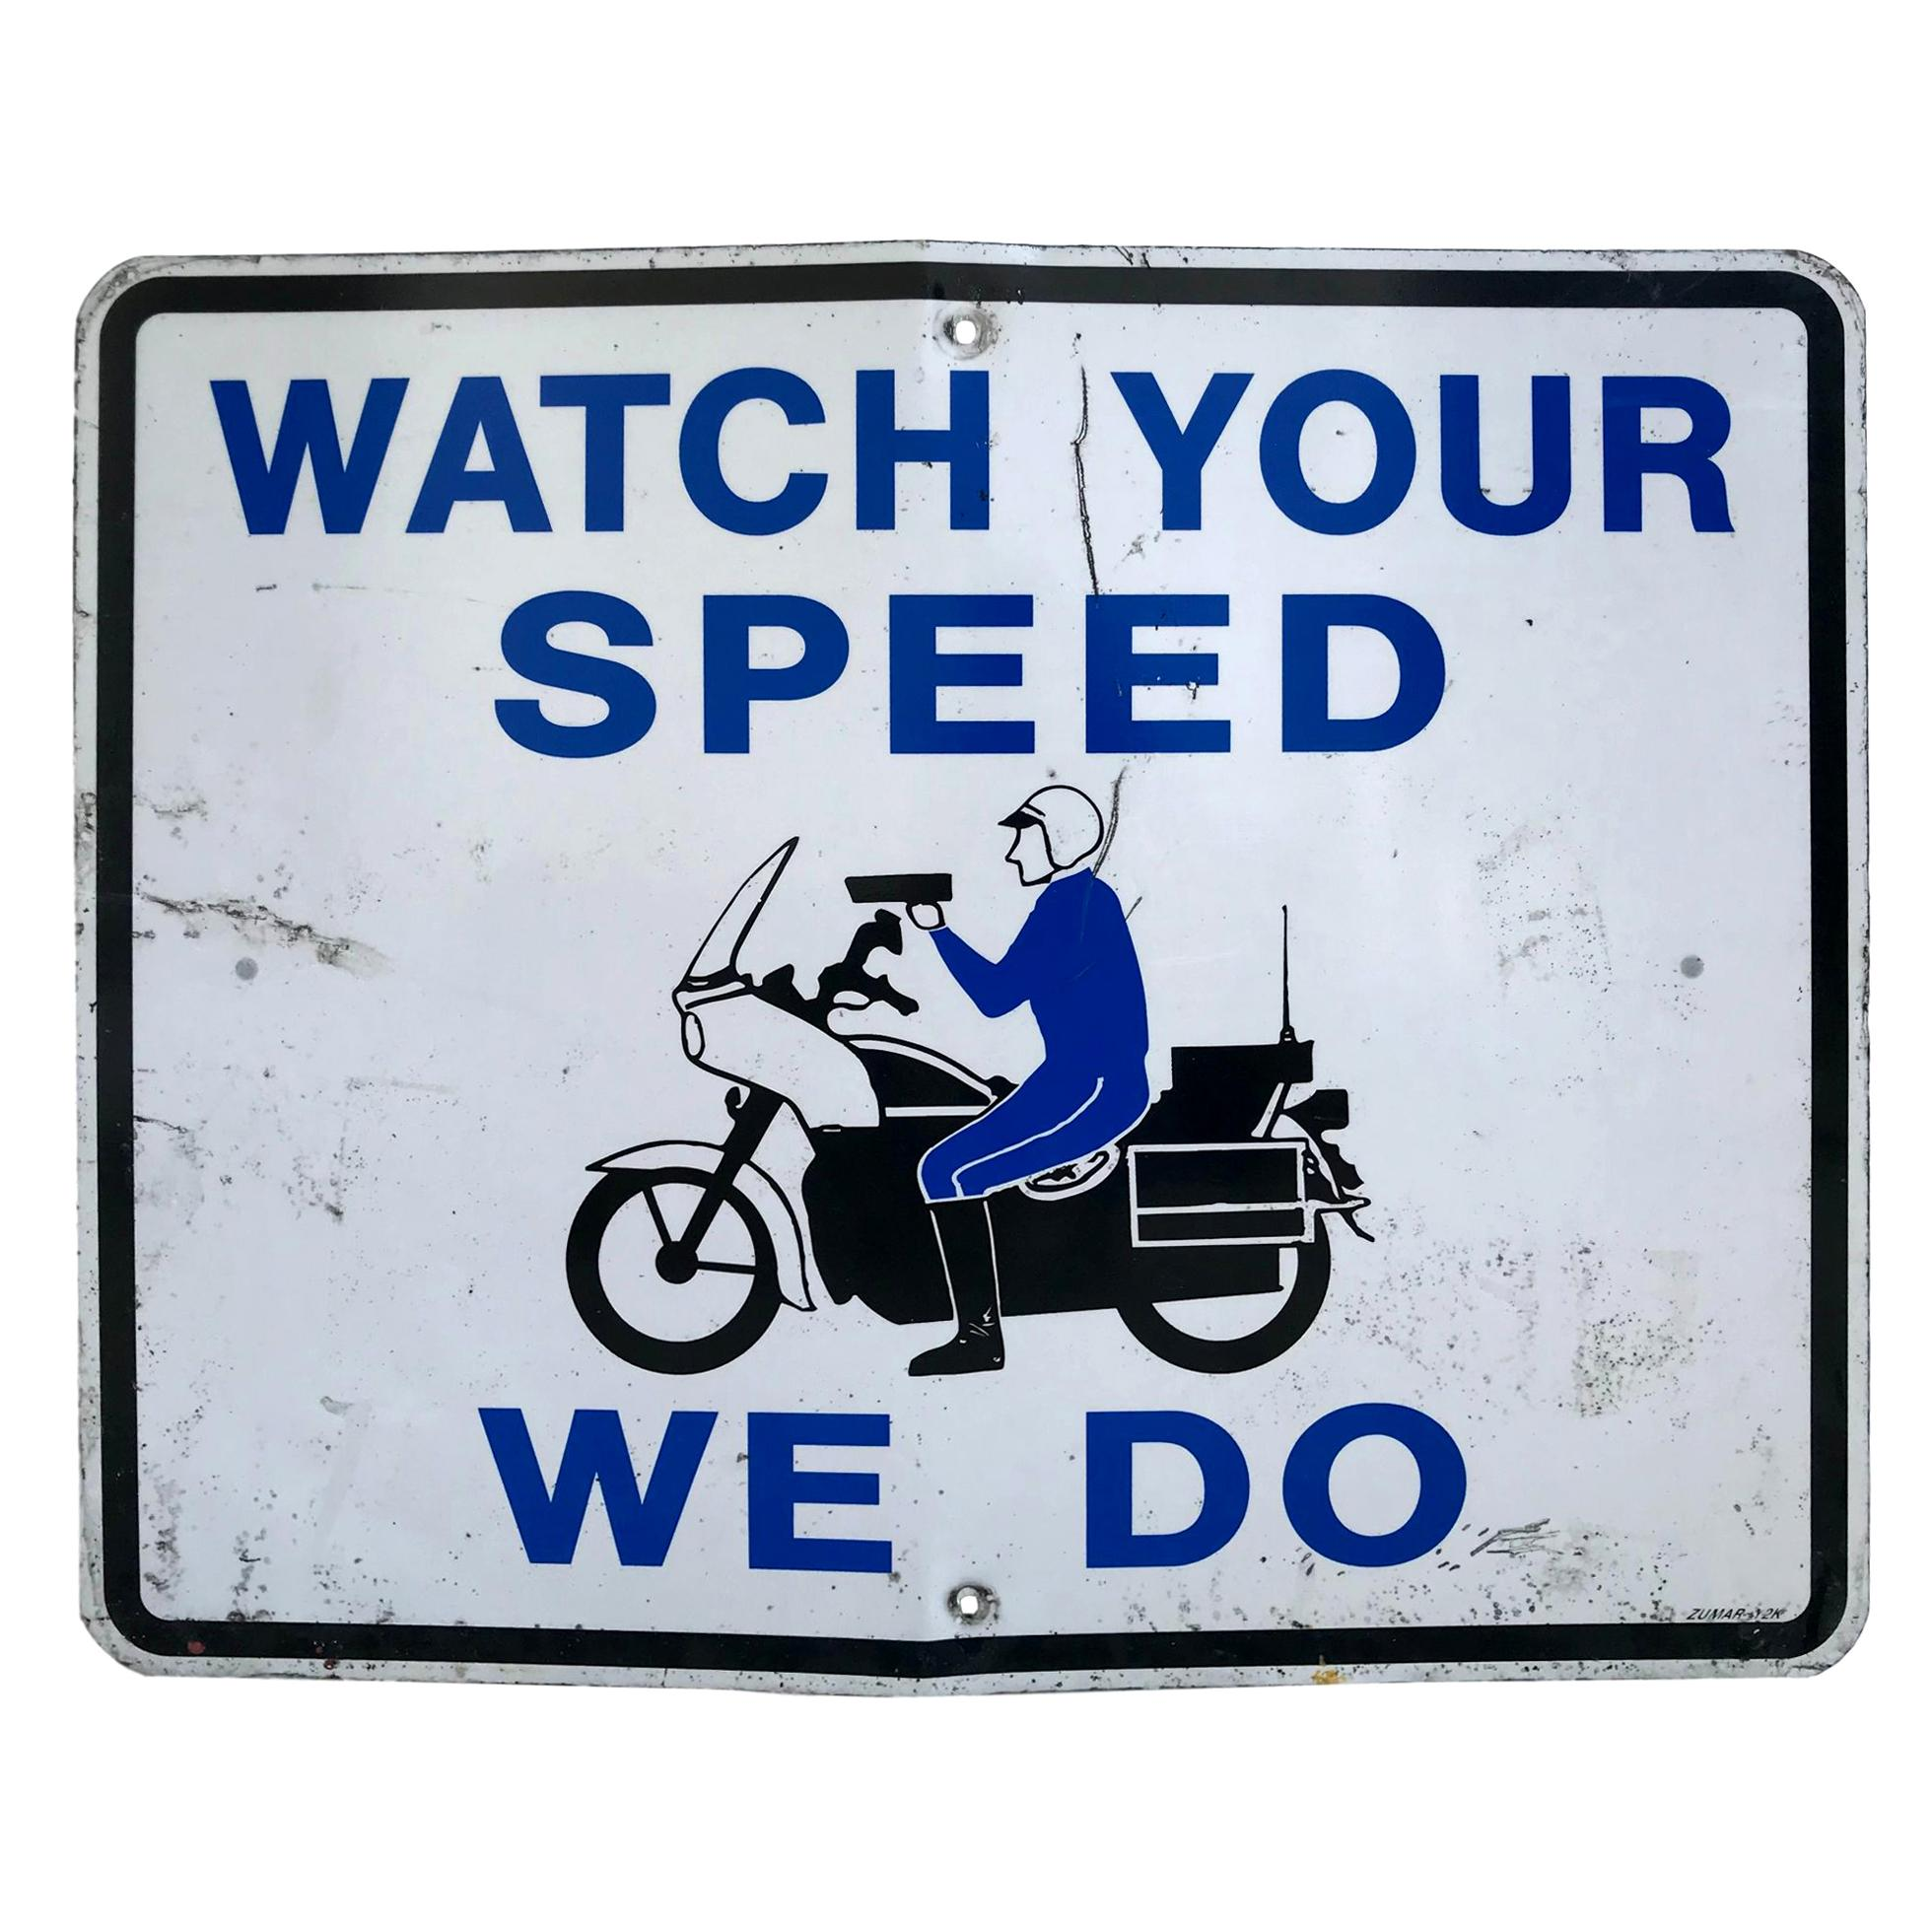 Vintage California Highway Watch Your Speed Sign